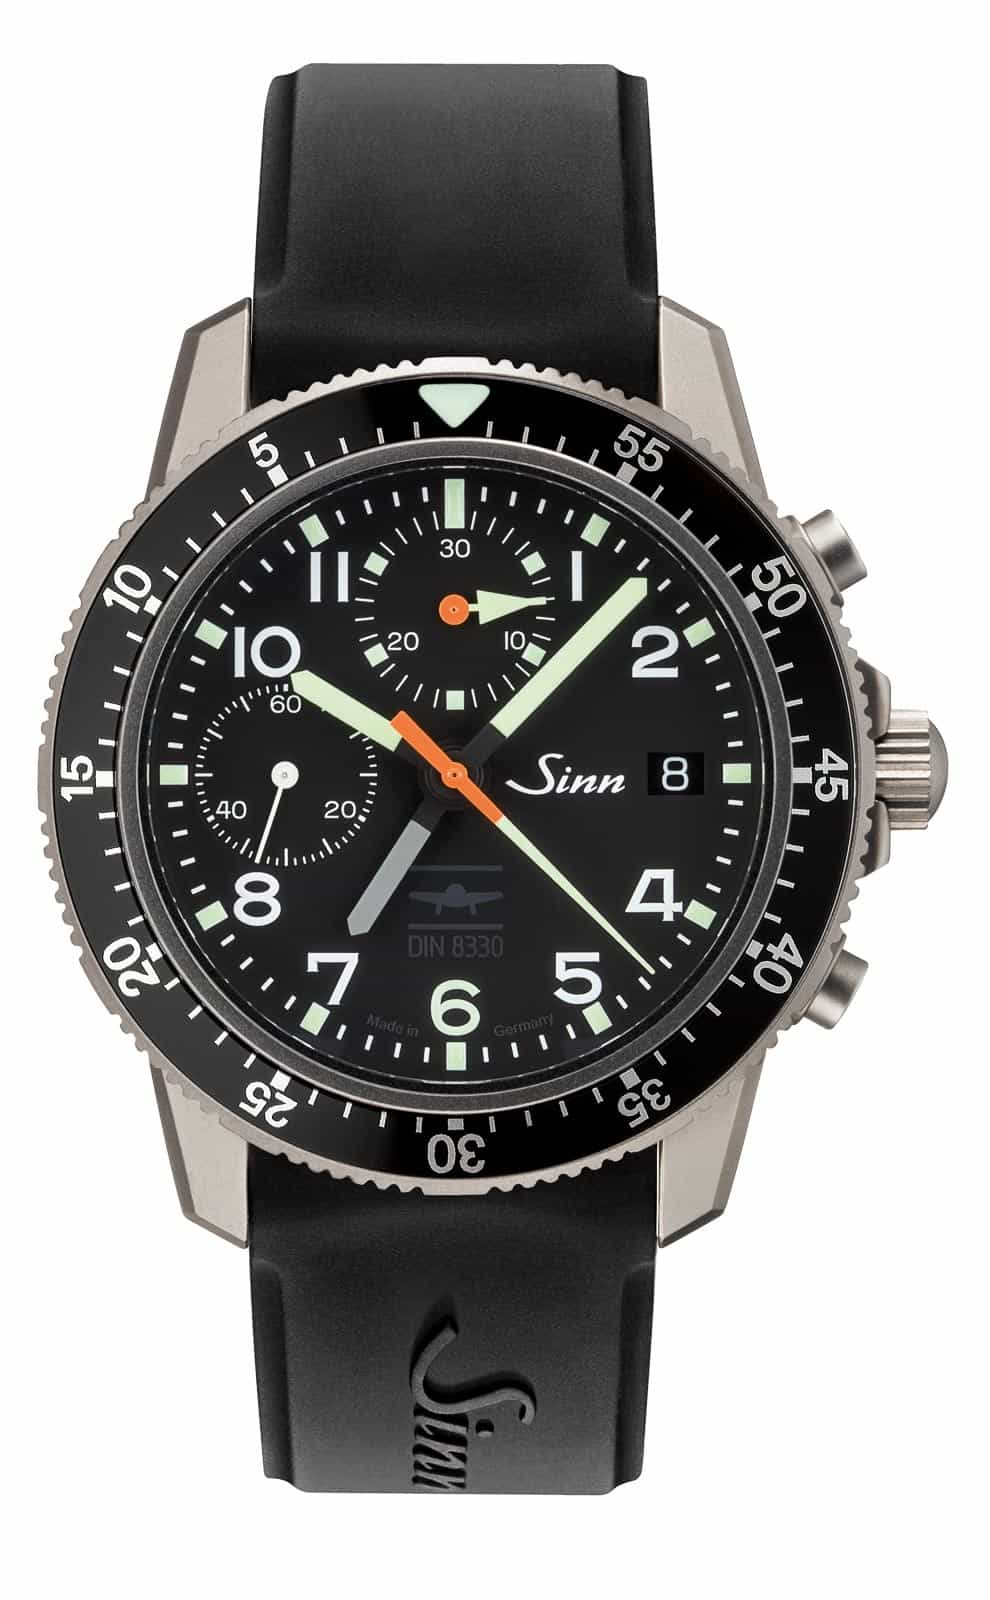 Sinn Watches Meeting The New DIN 8330 Standards